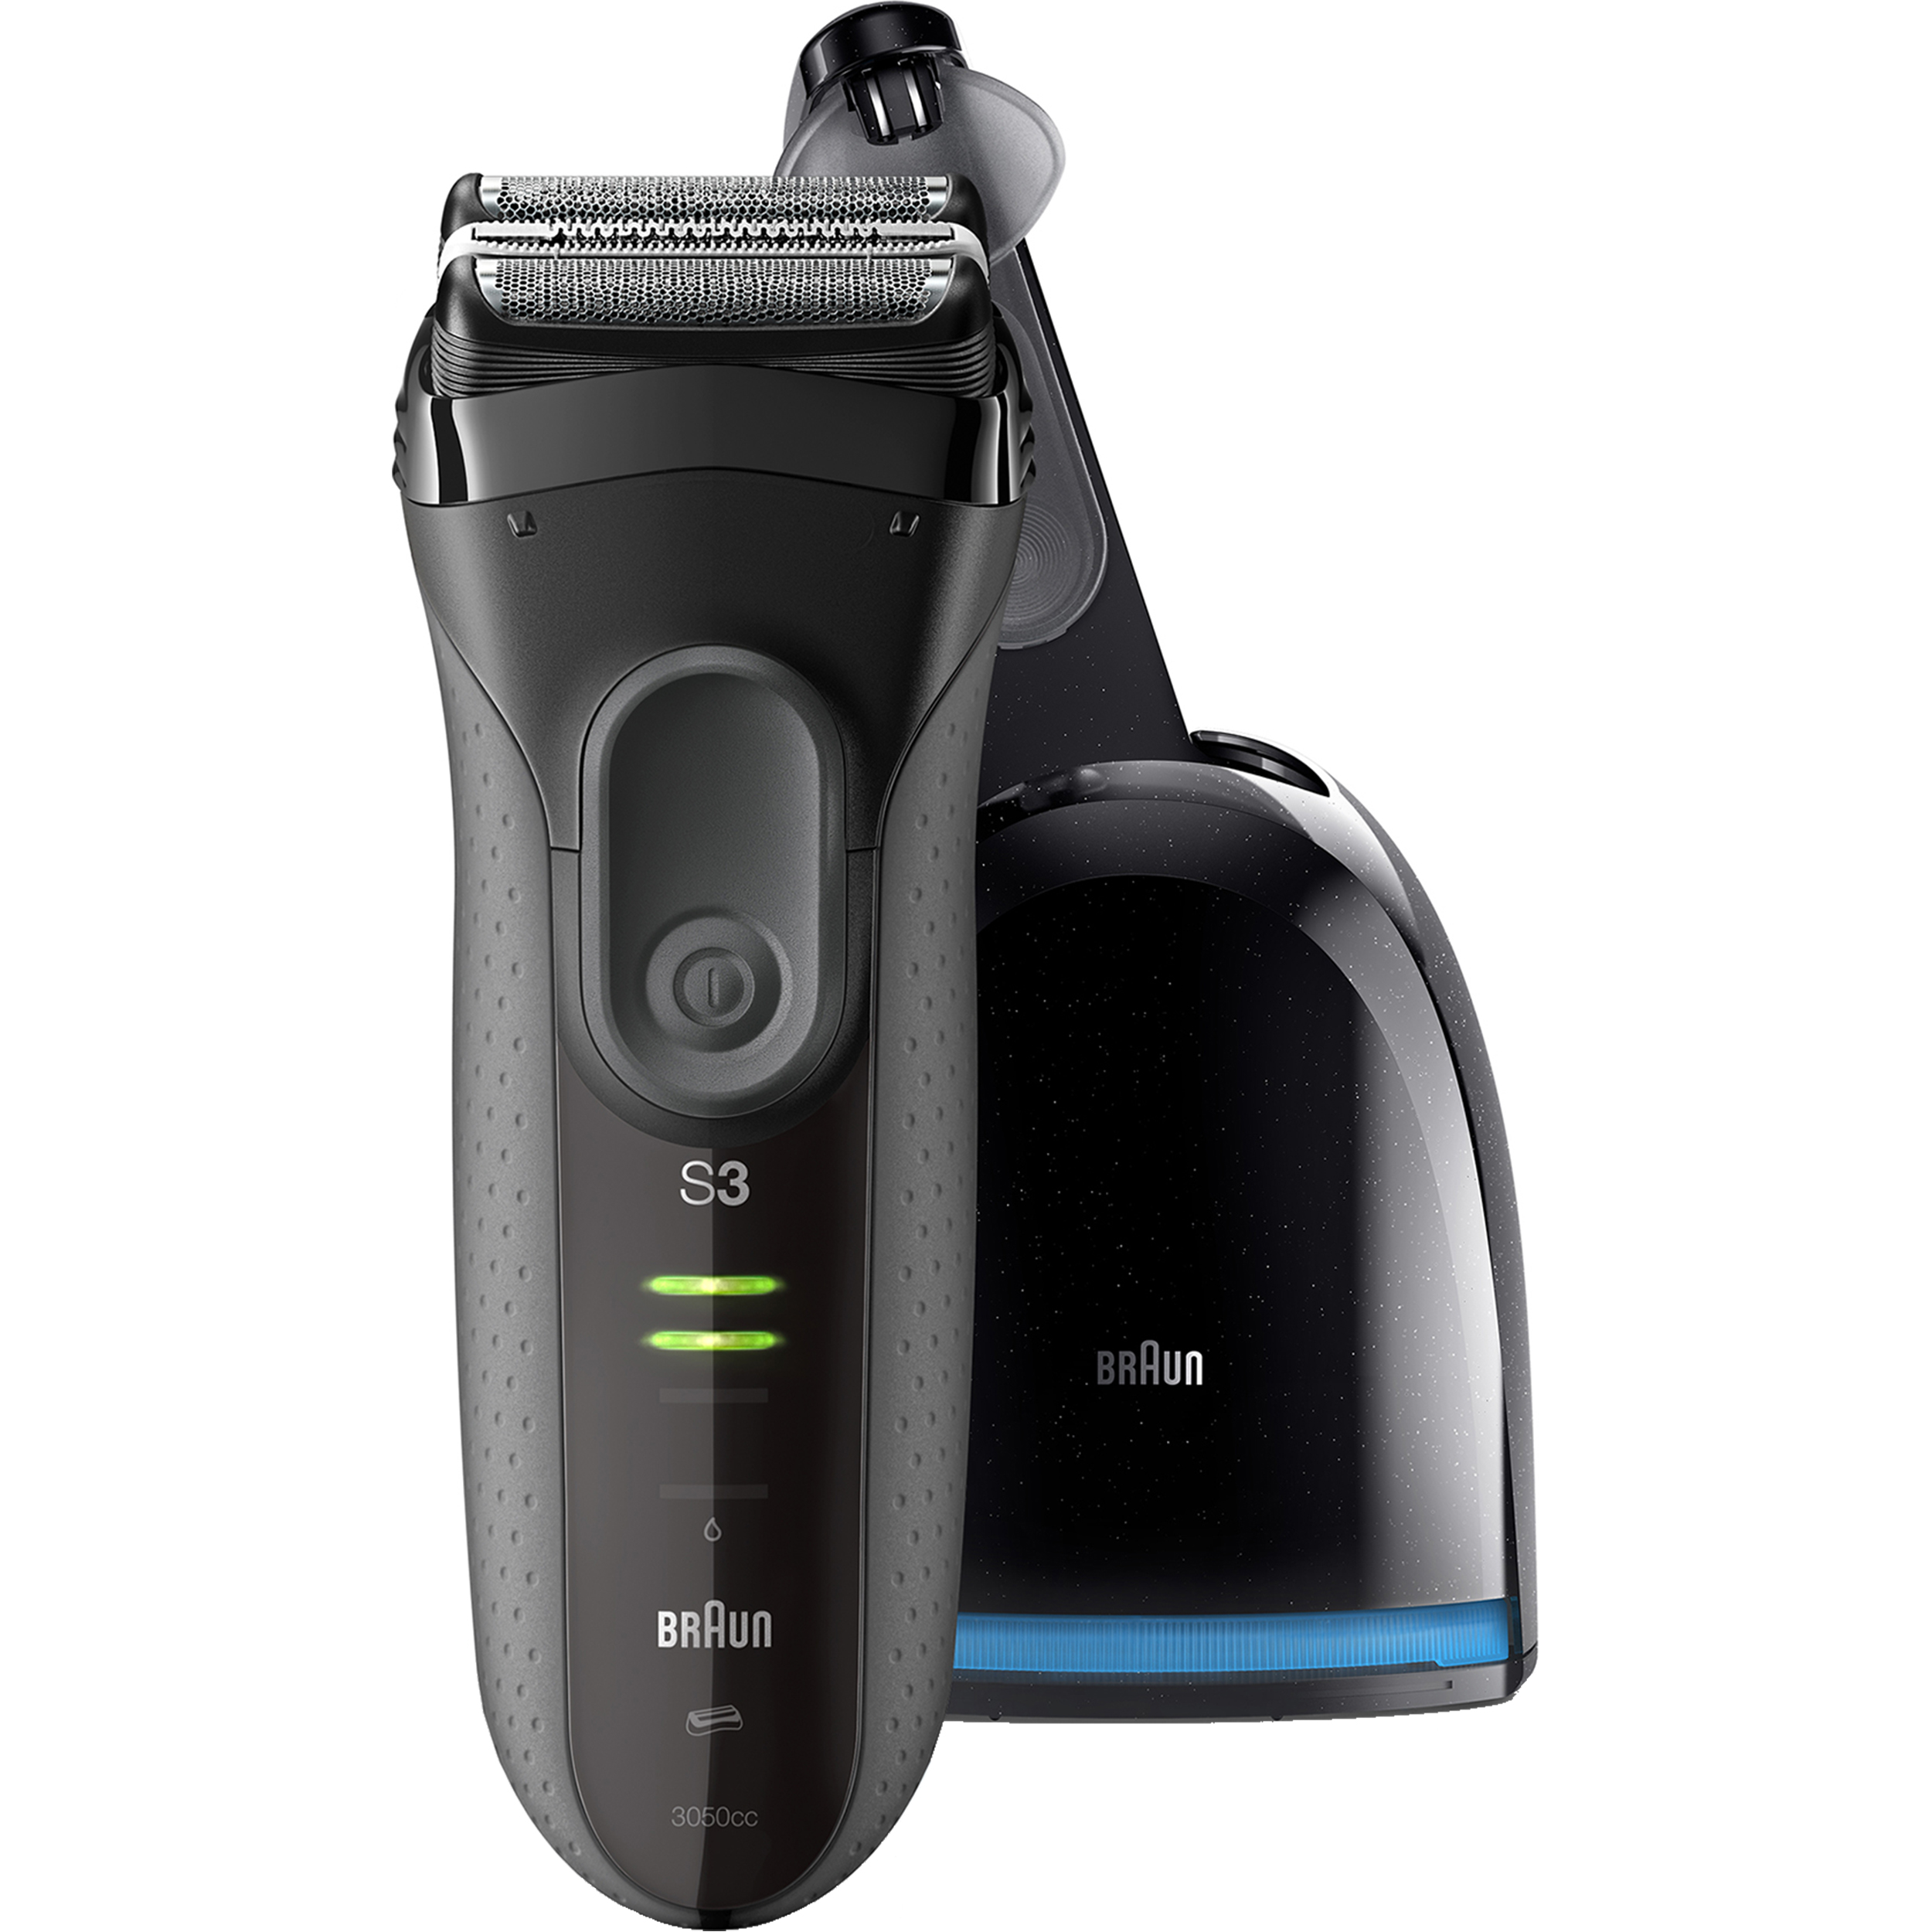 Braun Series 3 ProSkin 3050cc ($10 Mail In Rebate Available) Electric Shaver for Men / Rechargeable Electric Razor with Clean&Charge System, Black